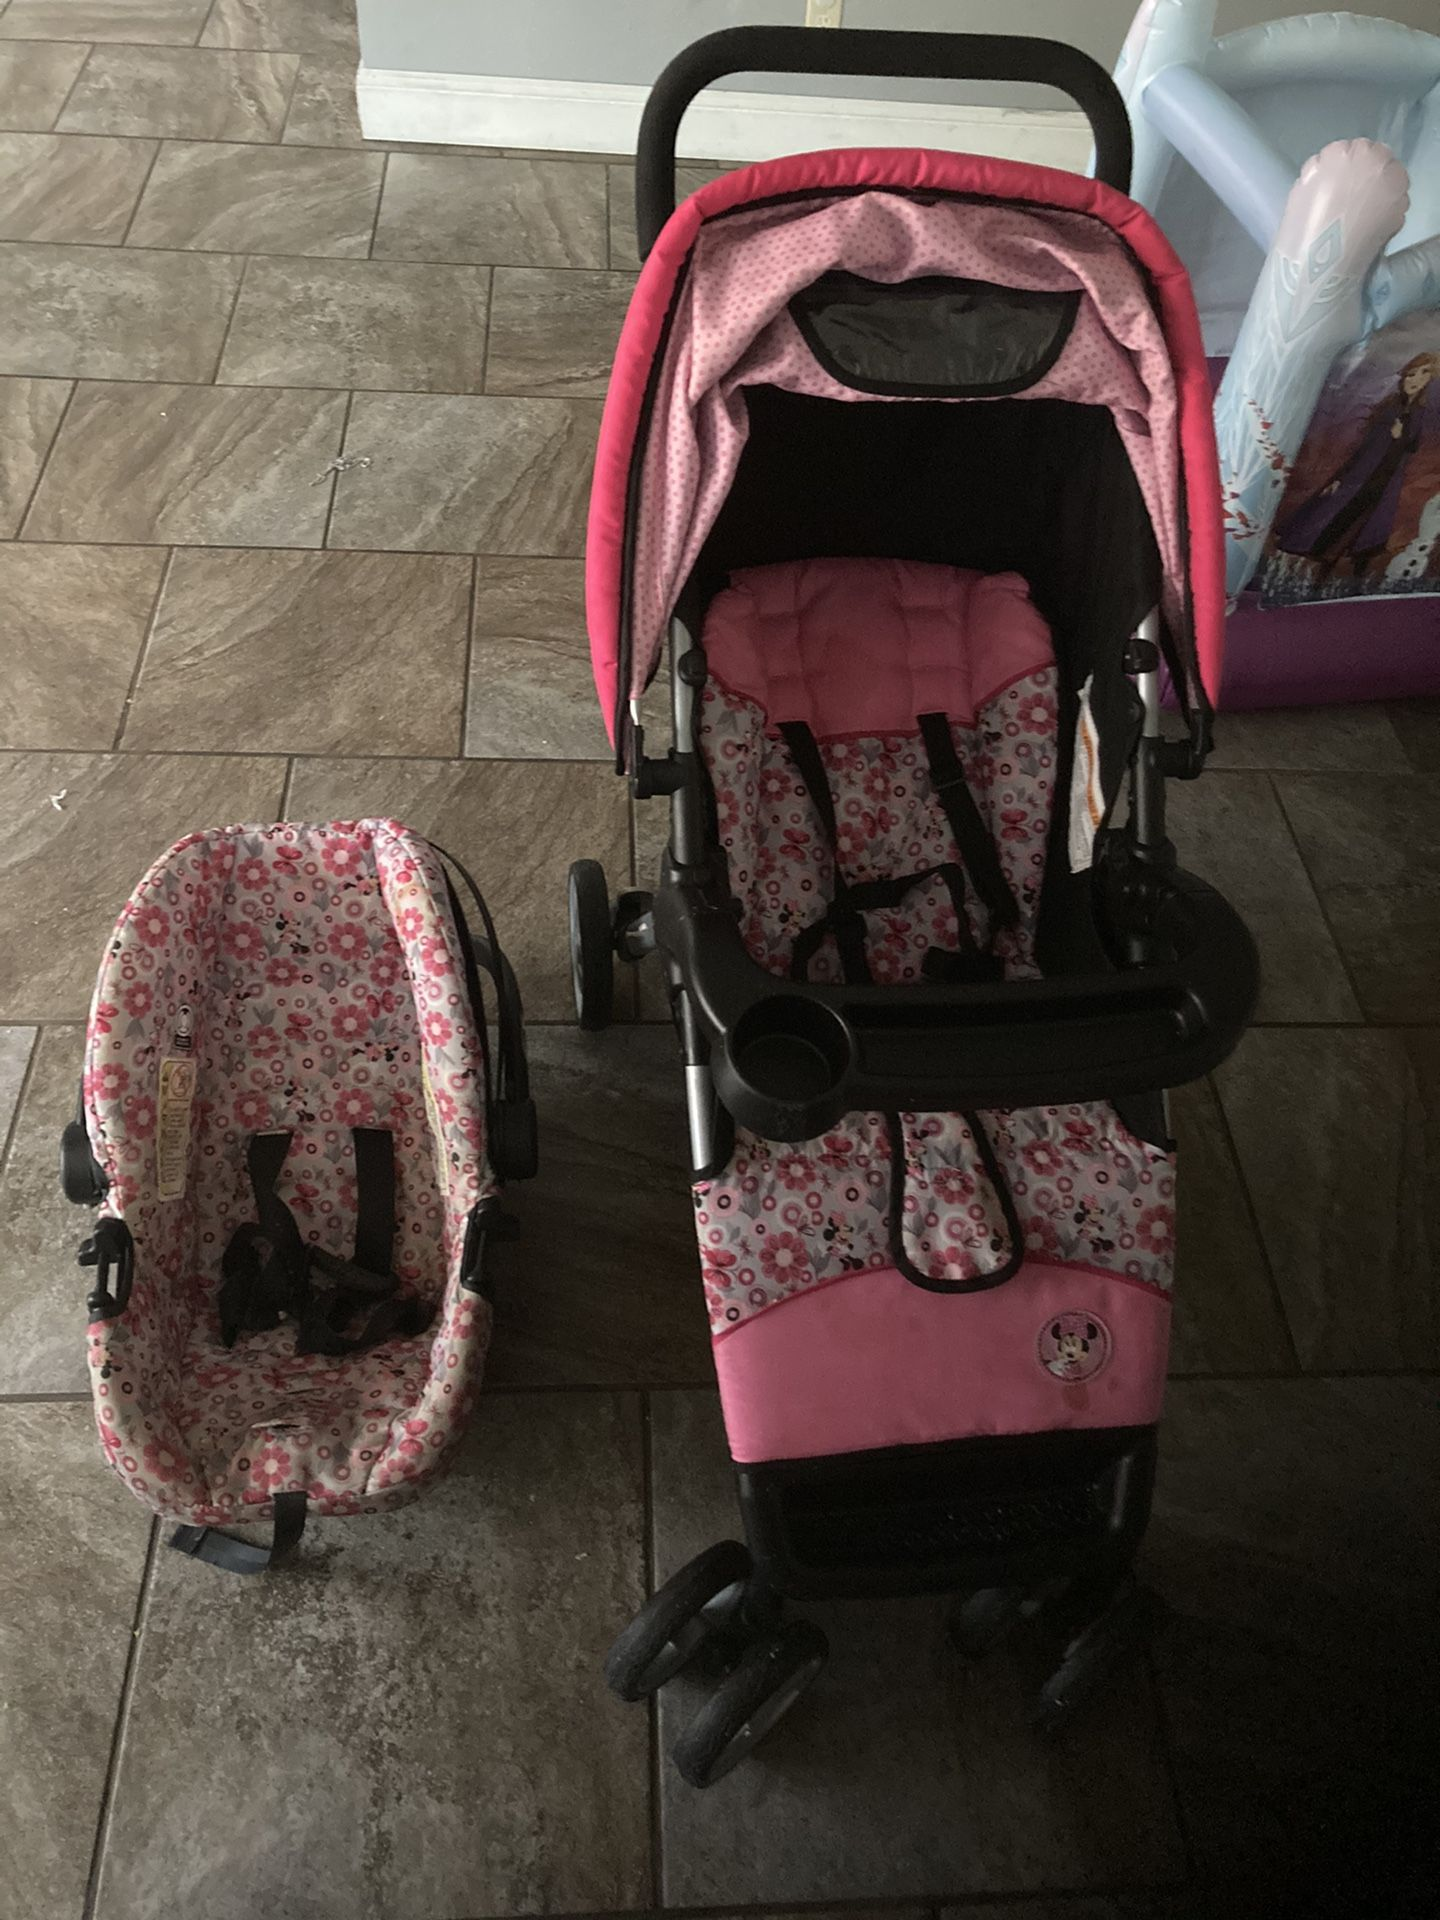 2 in 1 stroller and car seat